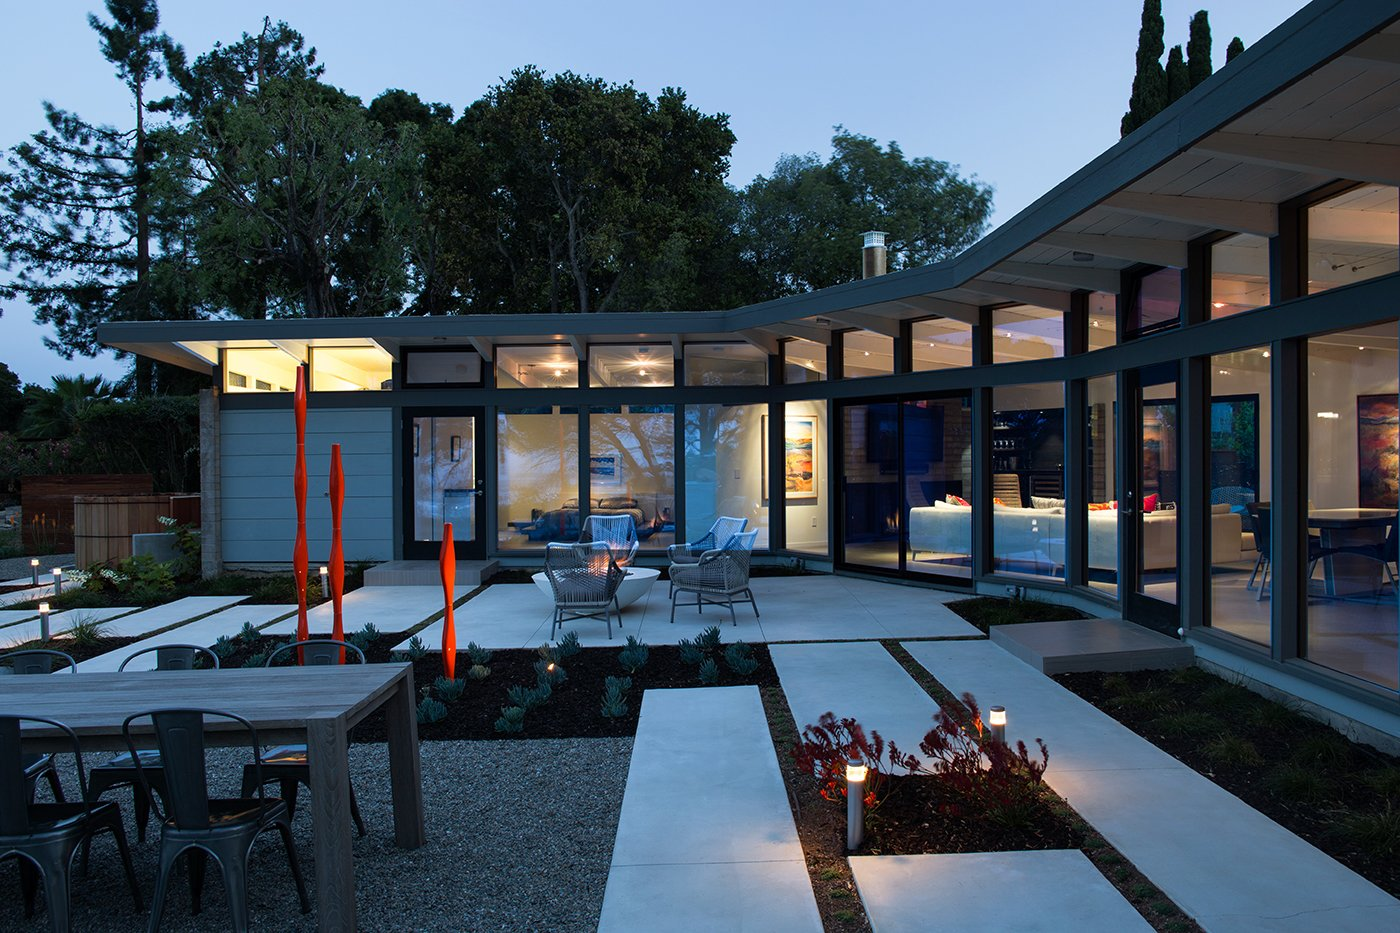 Mid Century Modern View House   Klopf Architecture, Outer Space Landscape Architects, and Flegels Construction updated a classical 1950s original mid-century modern house designed by the late Frank Lloyd Wright apprentice Ellis Jacobs. Klopf Architecture pushed the original design intent to make the house more open and uniform from space to space, while improving energy efficiency, capitalizing more on the already incredible views, improving the flow of spaces, providing an outdoor living area, and ratcheting up the quality level of the home in general. The updated custom Mid-Century Modern home is a remodeled single-family house in Redwood City. This 2,000 square foot (plus garage), 3 bedroom, 2 bathroom home is located in the heart of the Silicon Valley.